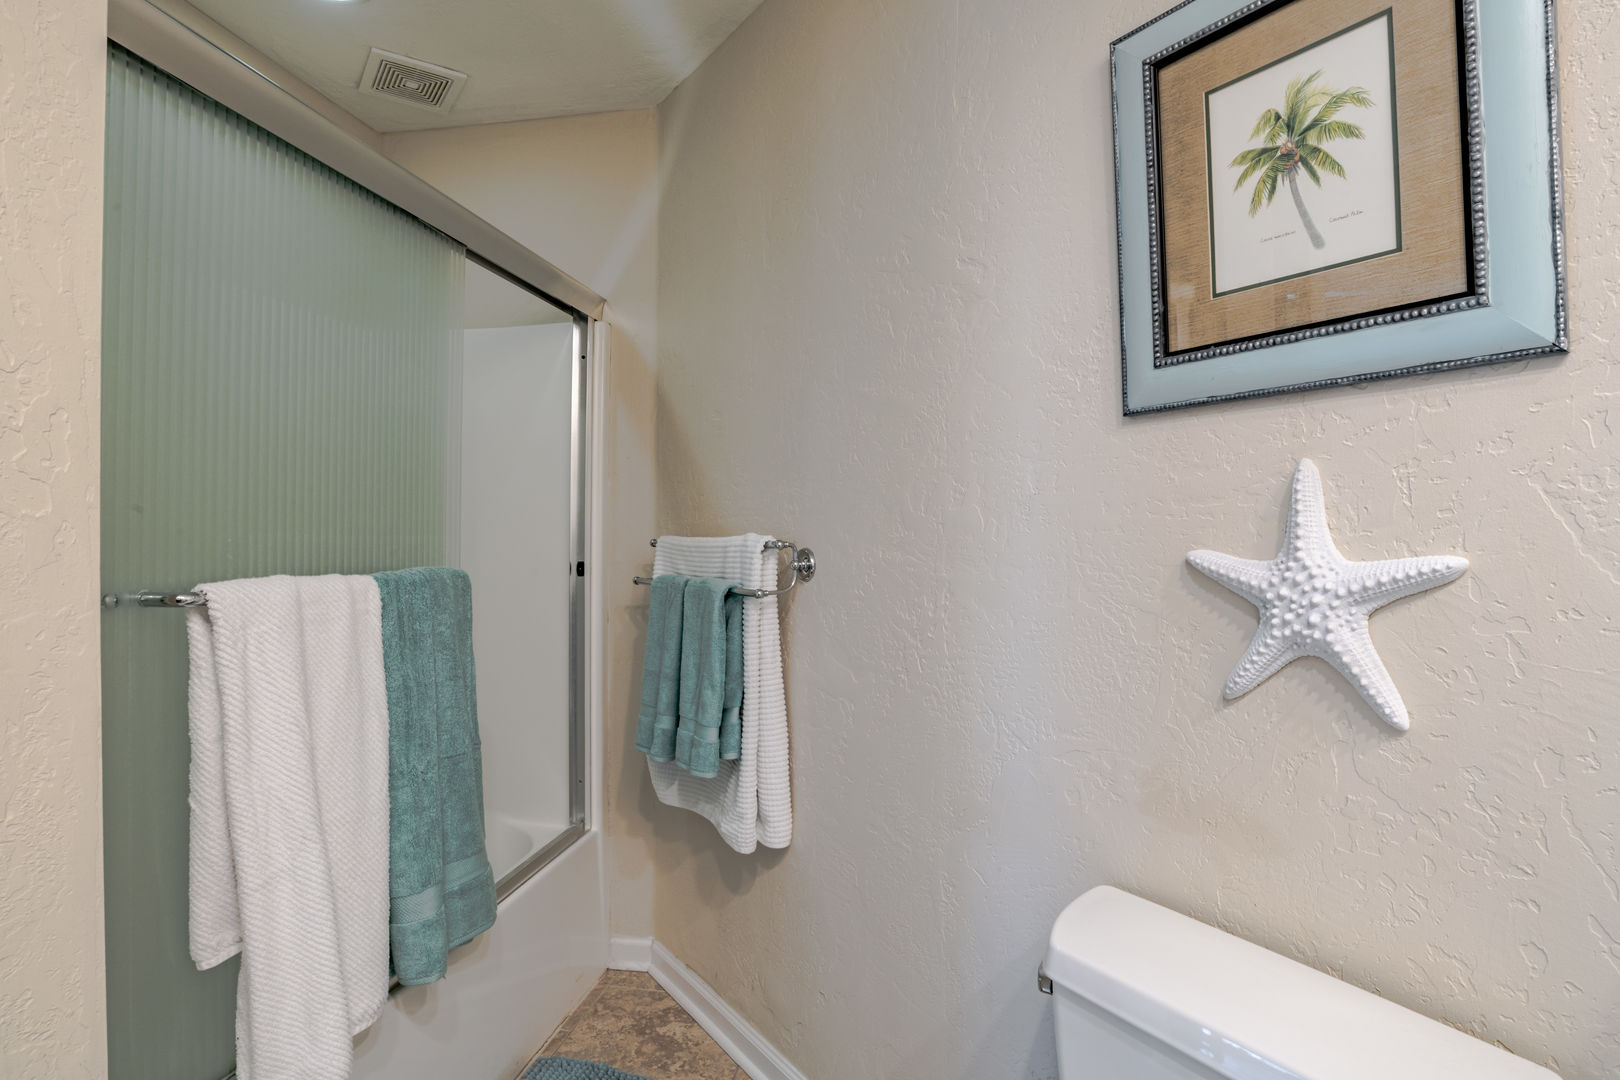 Bath attached to Bedroom 4 with Shower/Tub combo